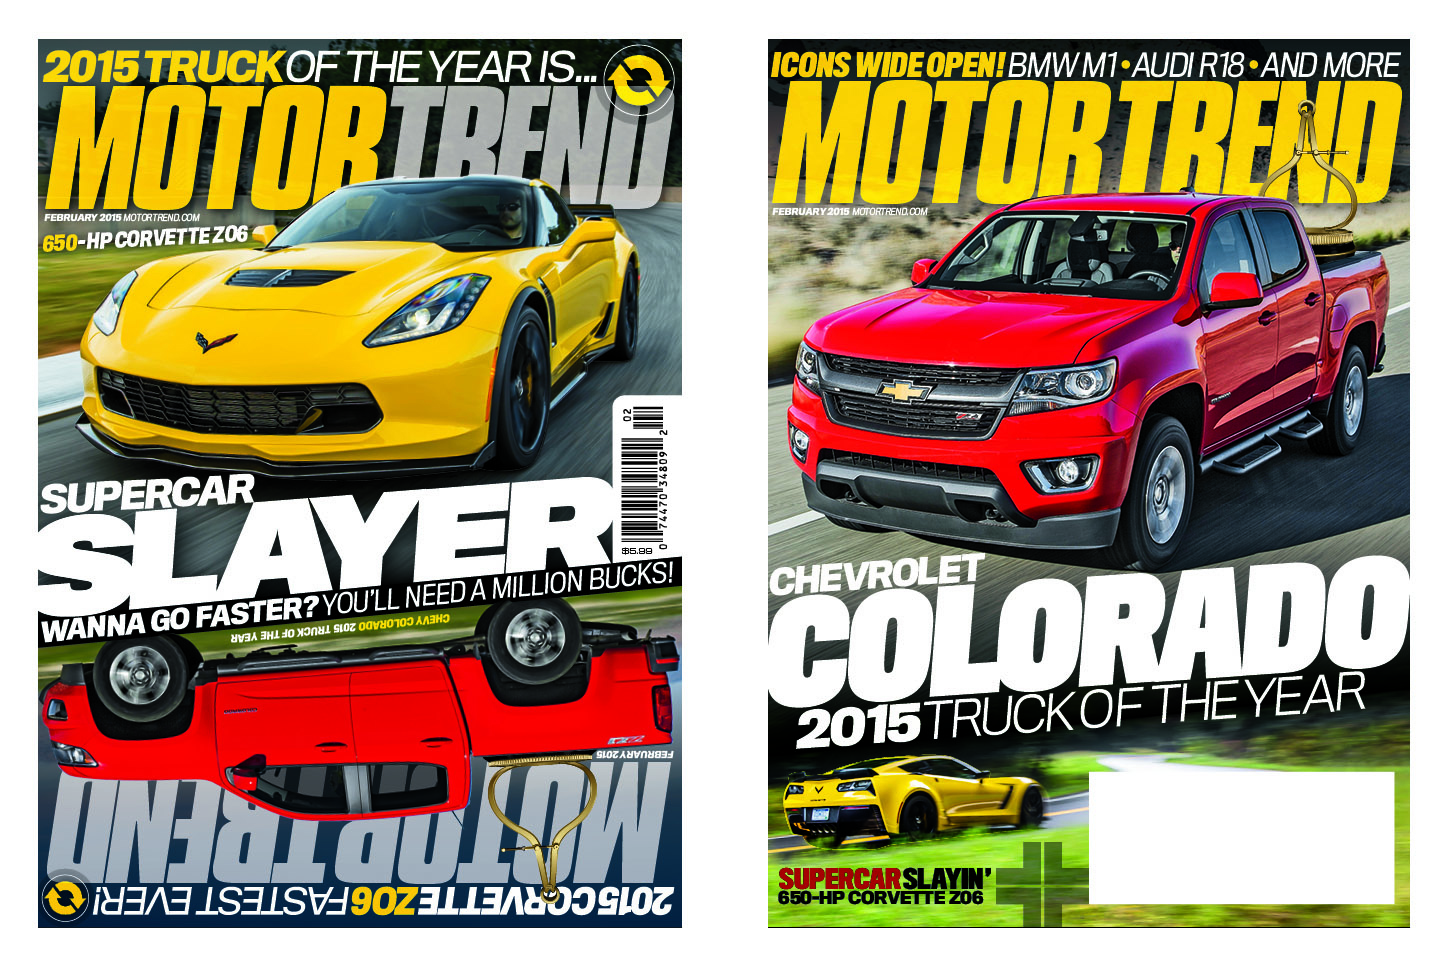 chevy colorado 2015 motor trend truck of the year the news wheel. Black Bedroom Furniture Sets. Home Design Ideas